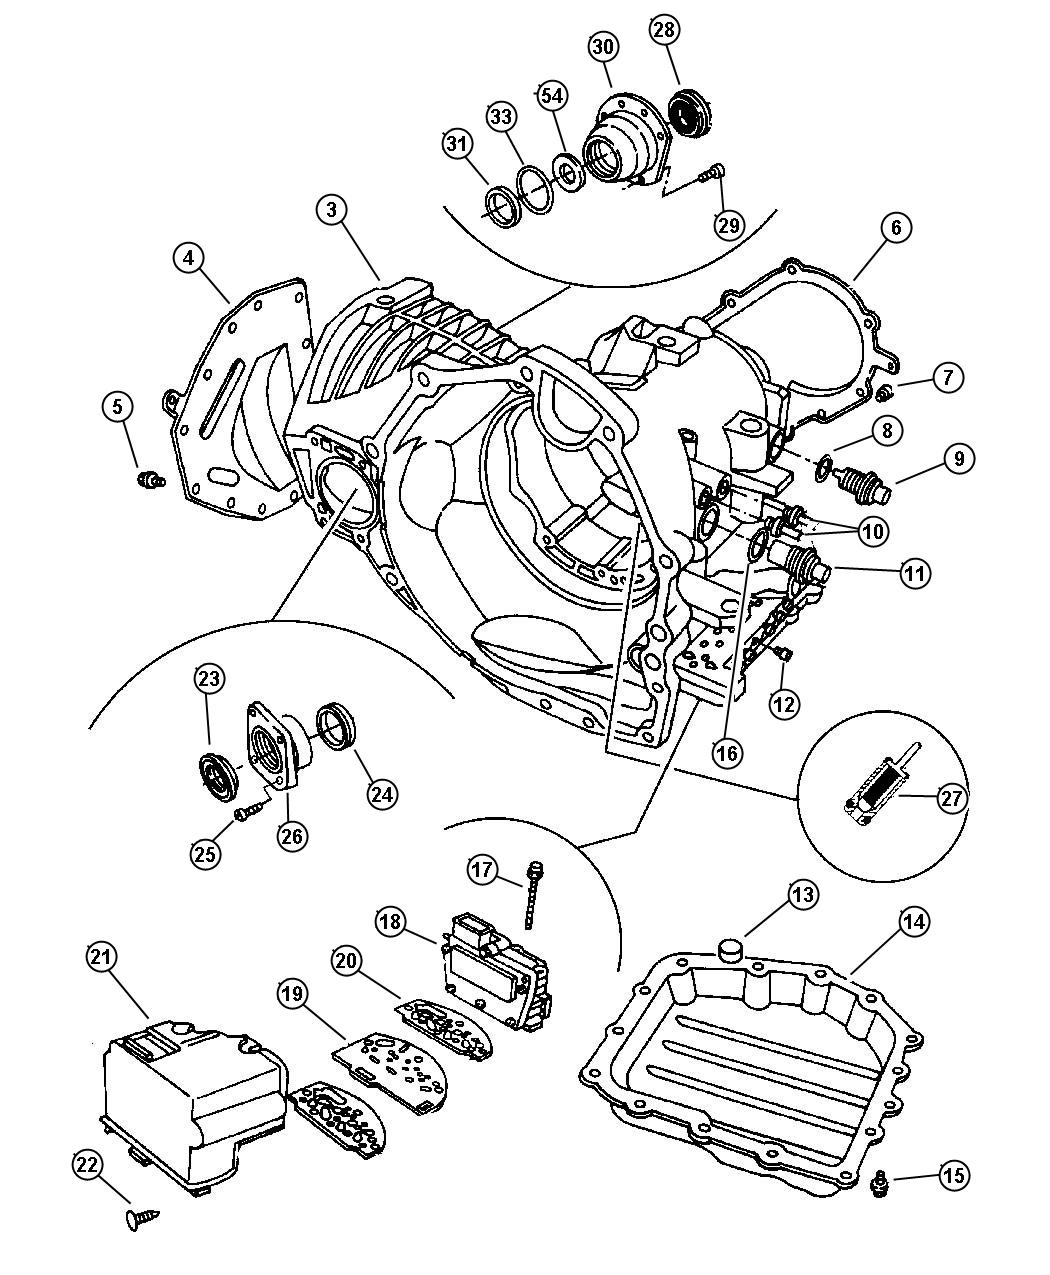 1998 Chrysler Intrepid Wiring Diagram Auto Electrical